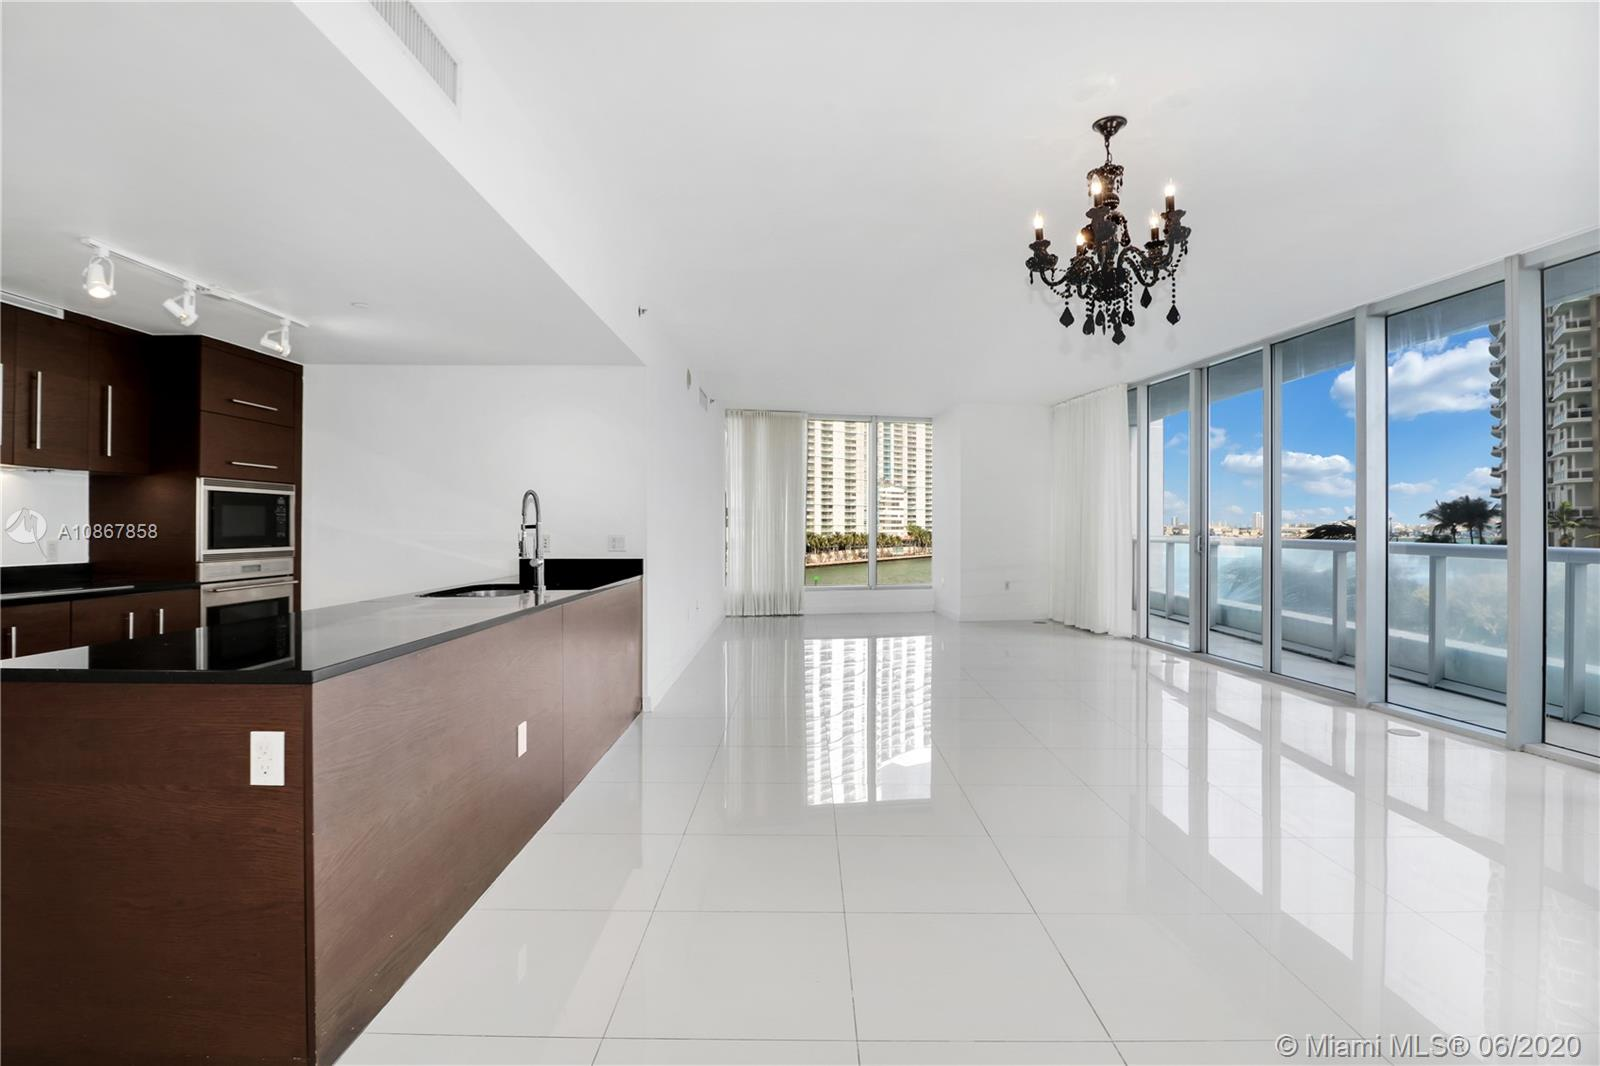 465  Brickell Ave #401 For Sale A10867858, FL